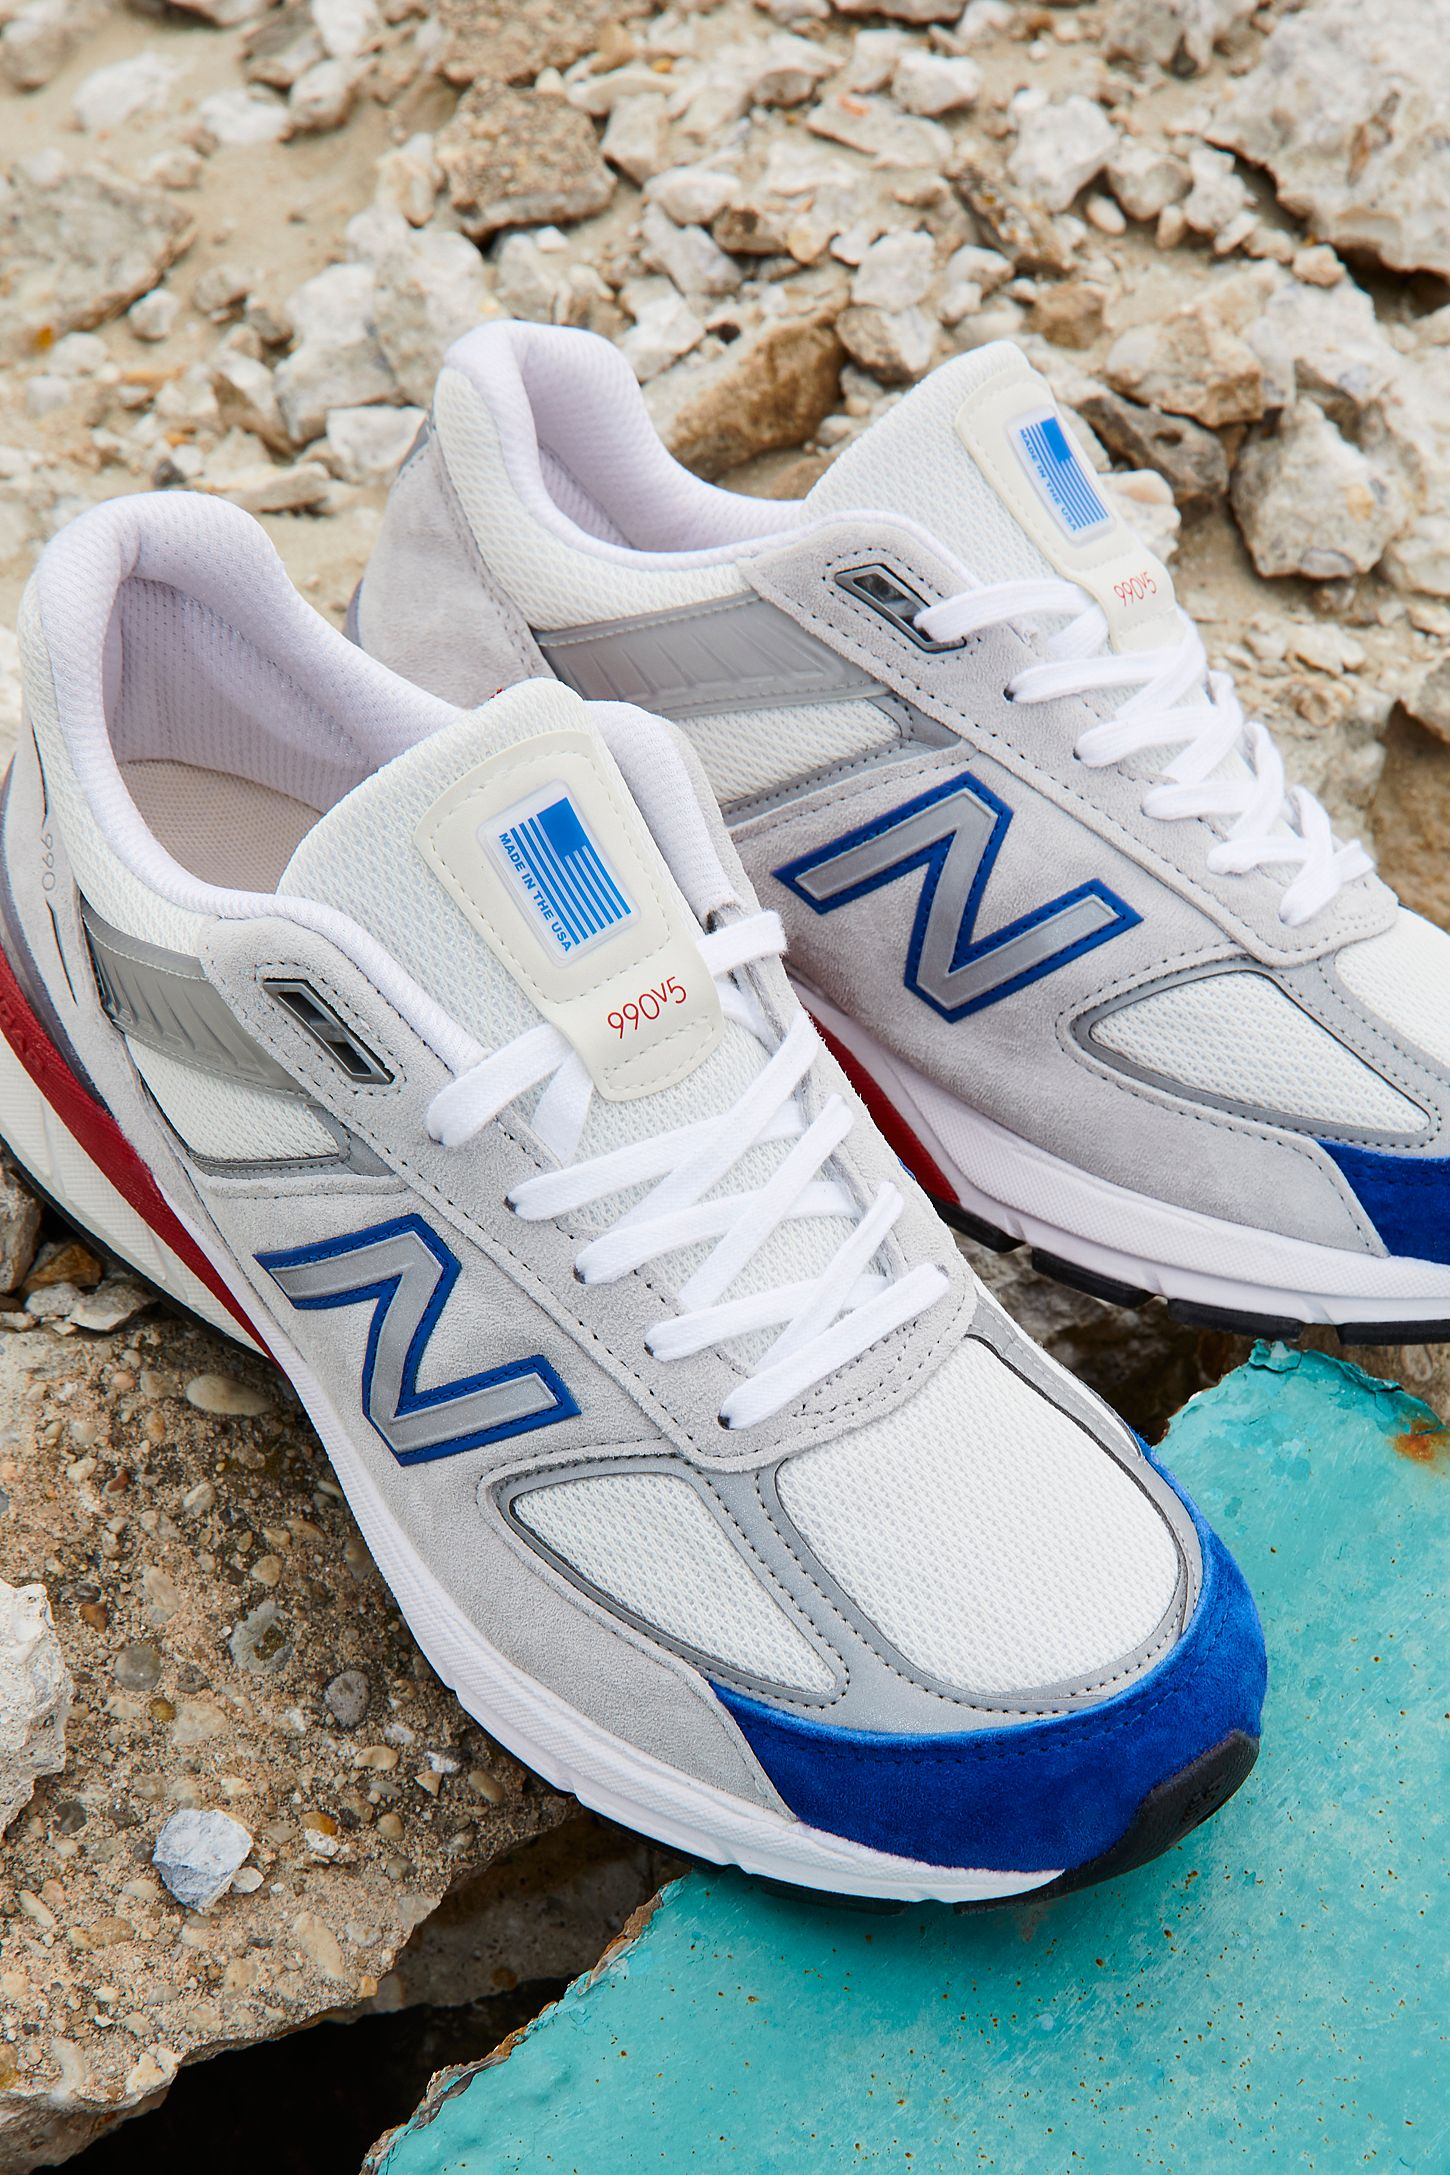 a45c21cf New Balance 990v5 Made In US Sneaker